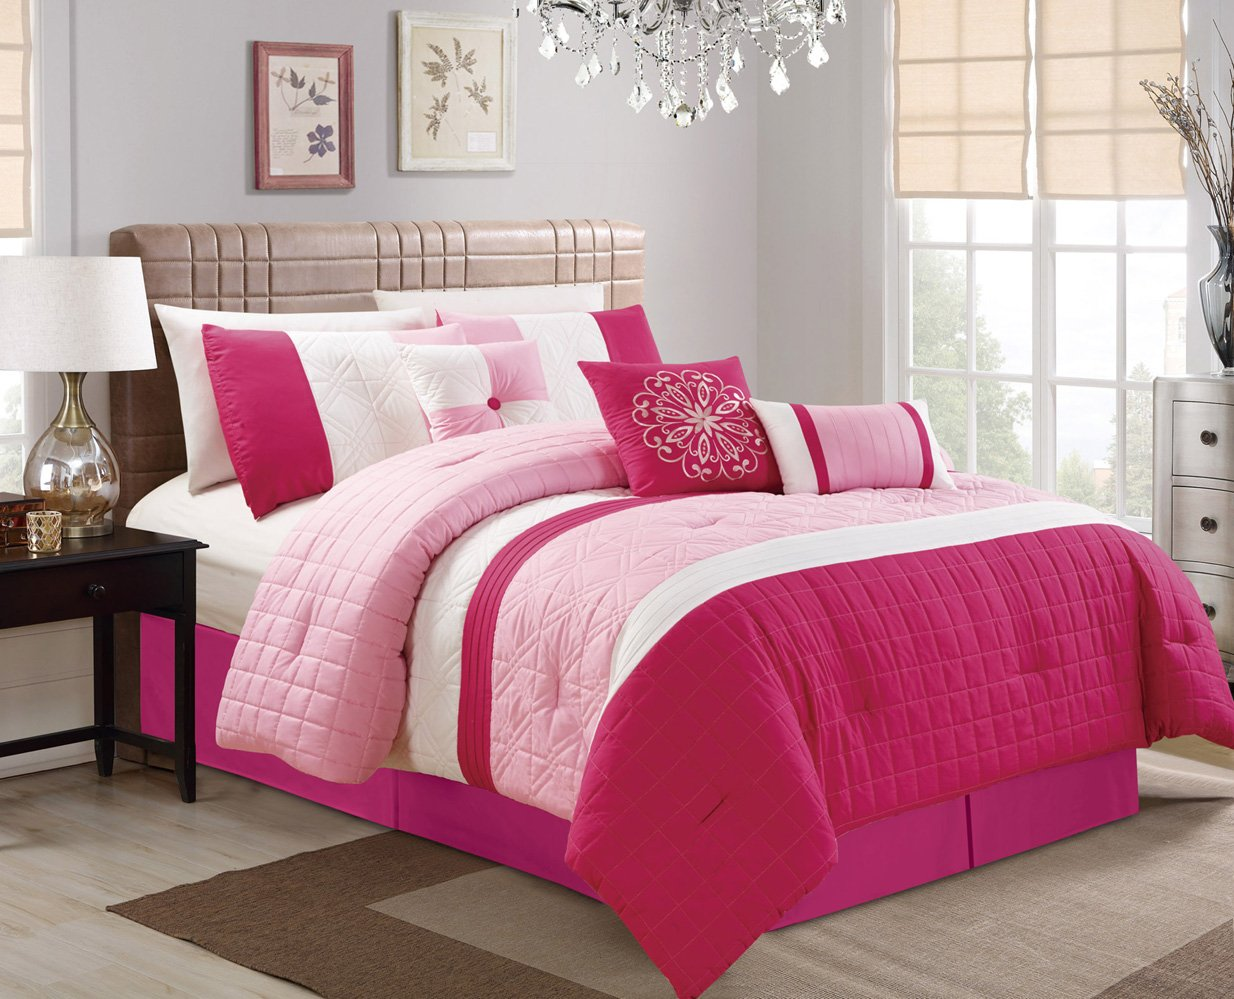 Grand Linen Modern 4 Piece Hot Pink, Light Pink, White Curtain Set with Attached Valance and Sheers